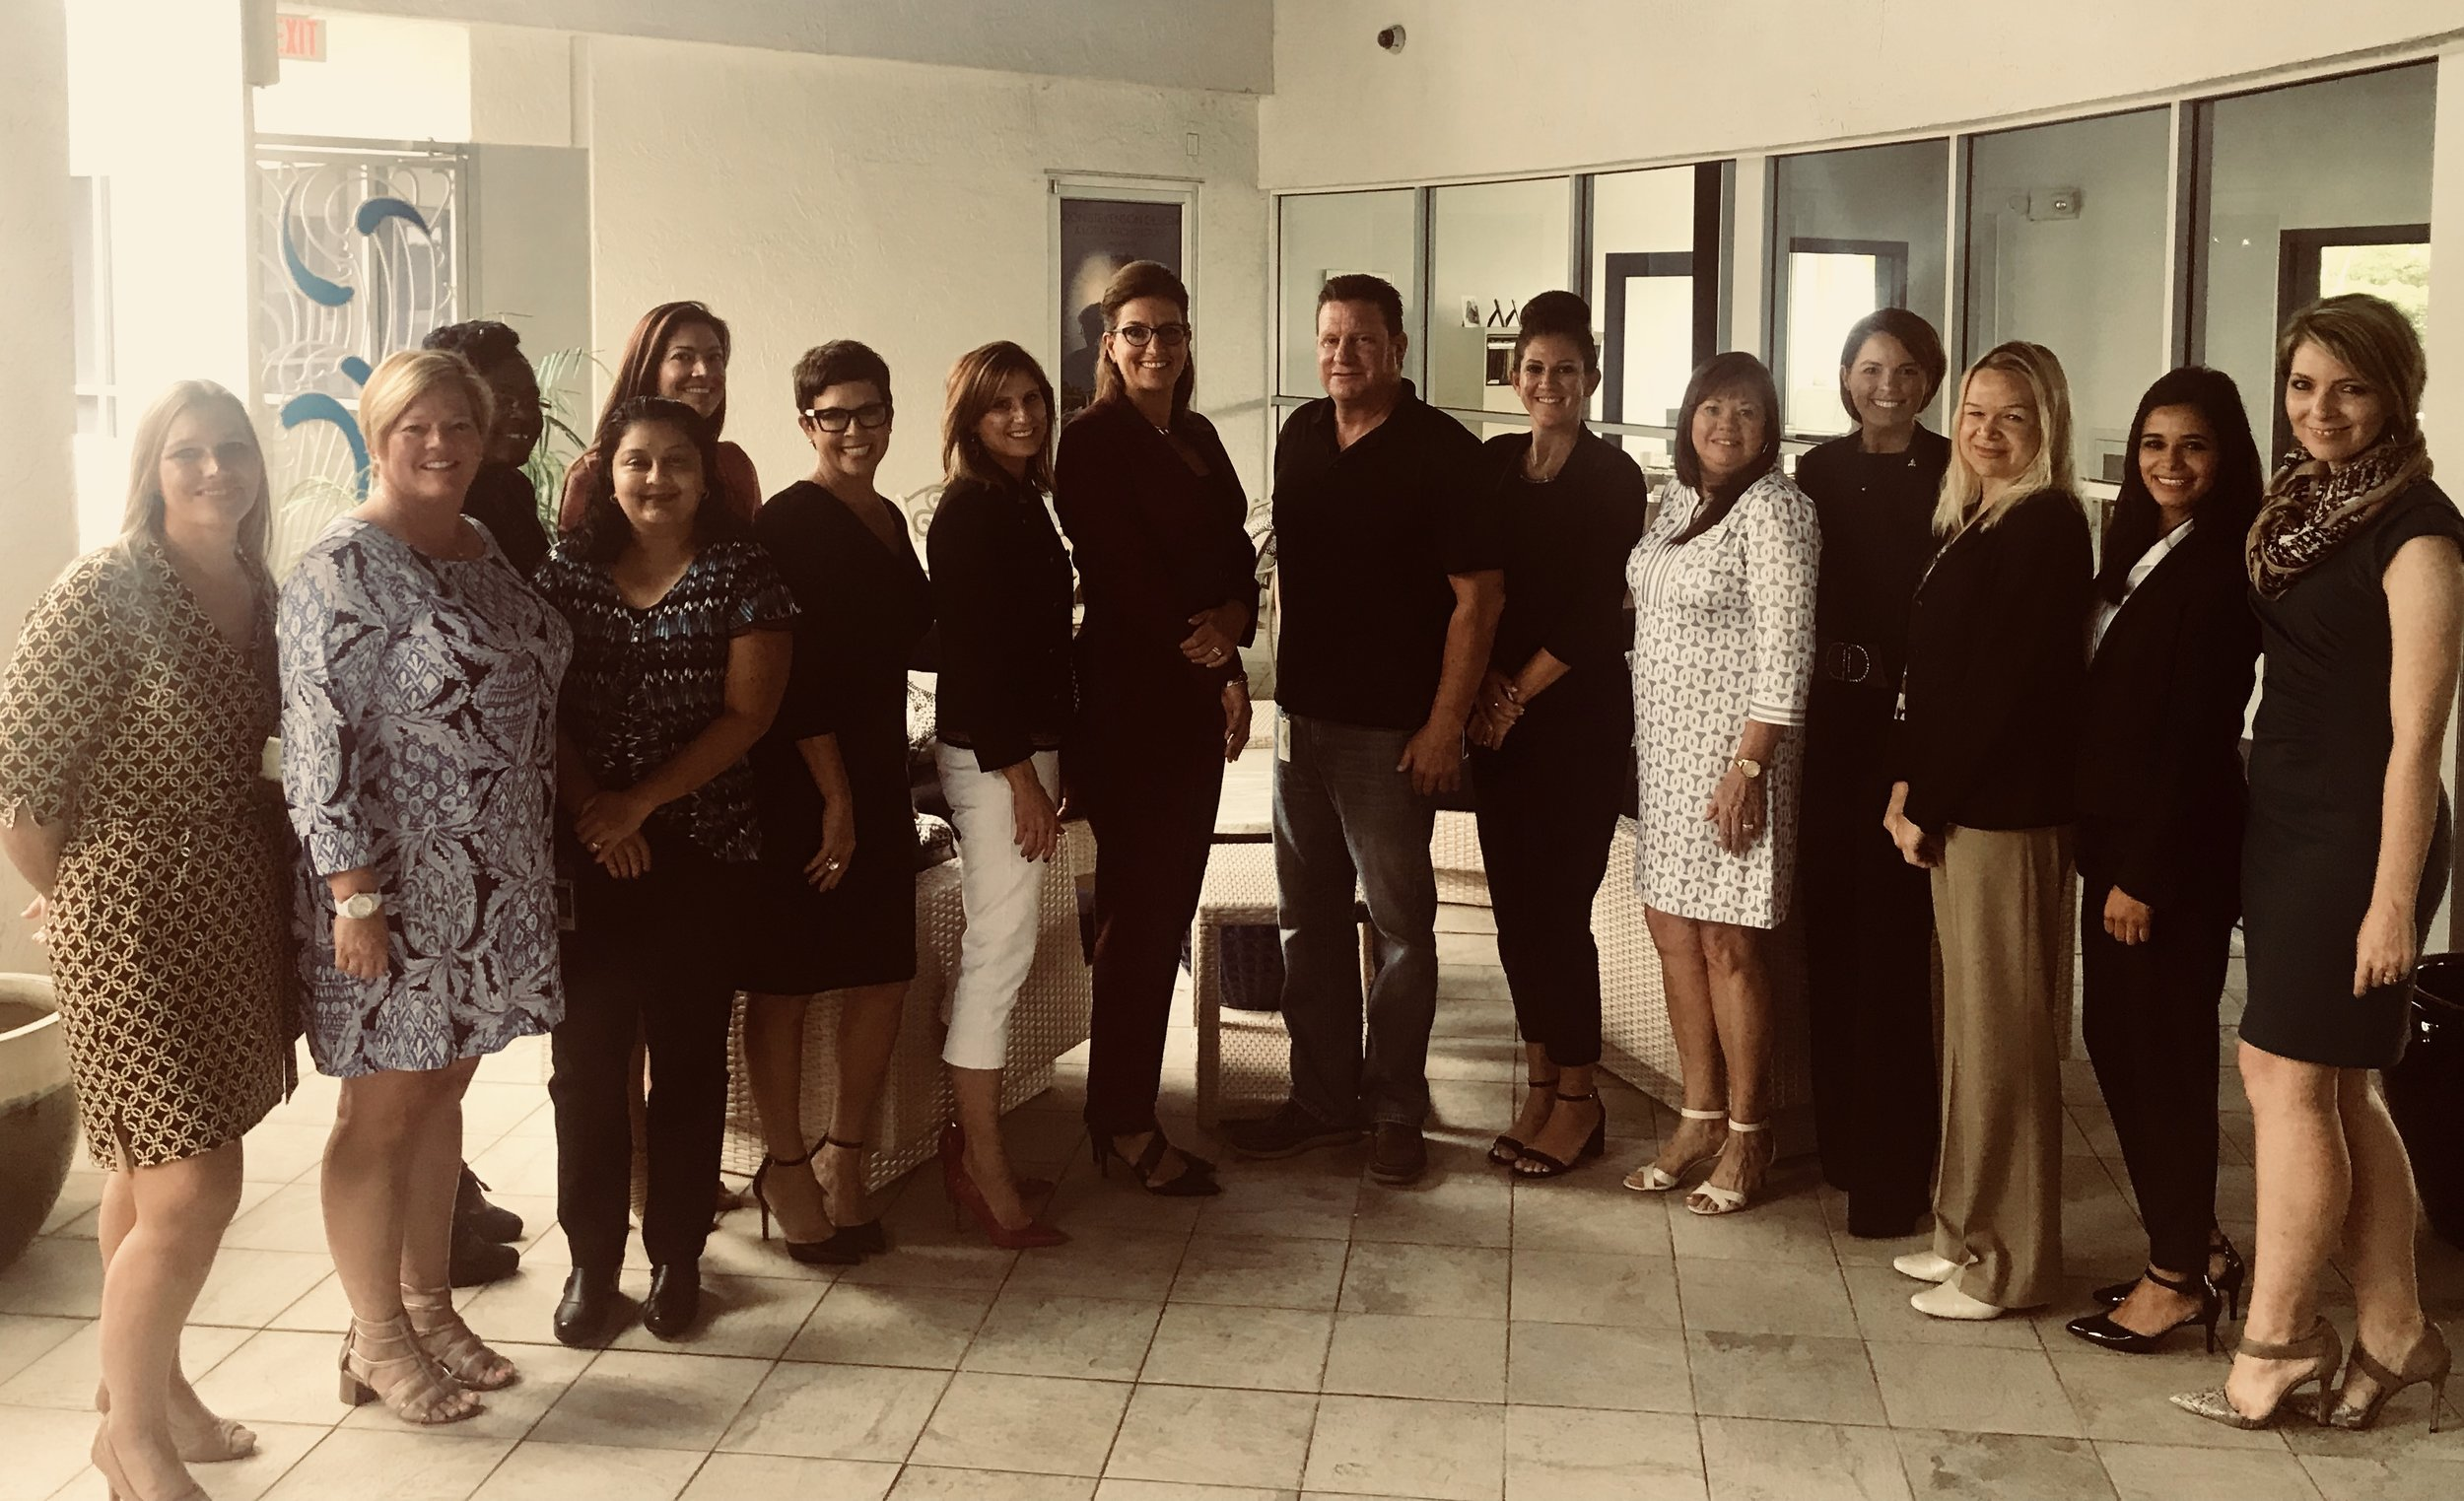 Local Employers assisted the Dress for Success SW Florida WETES program for the Practice Interview Day on August 14, 2018.